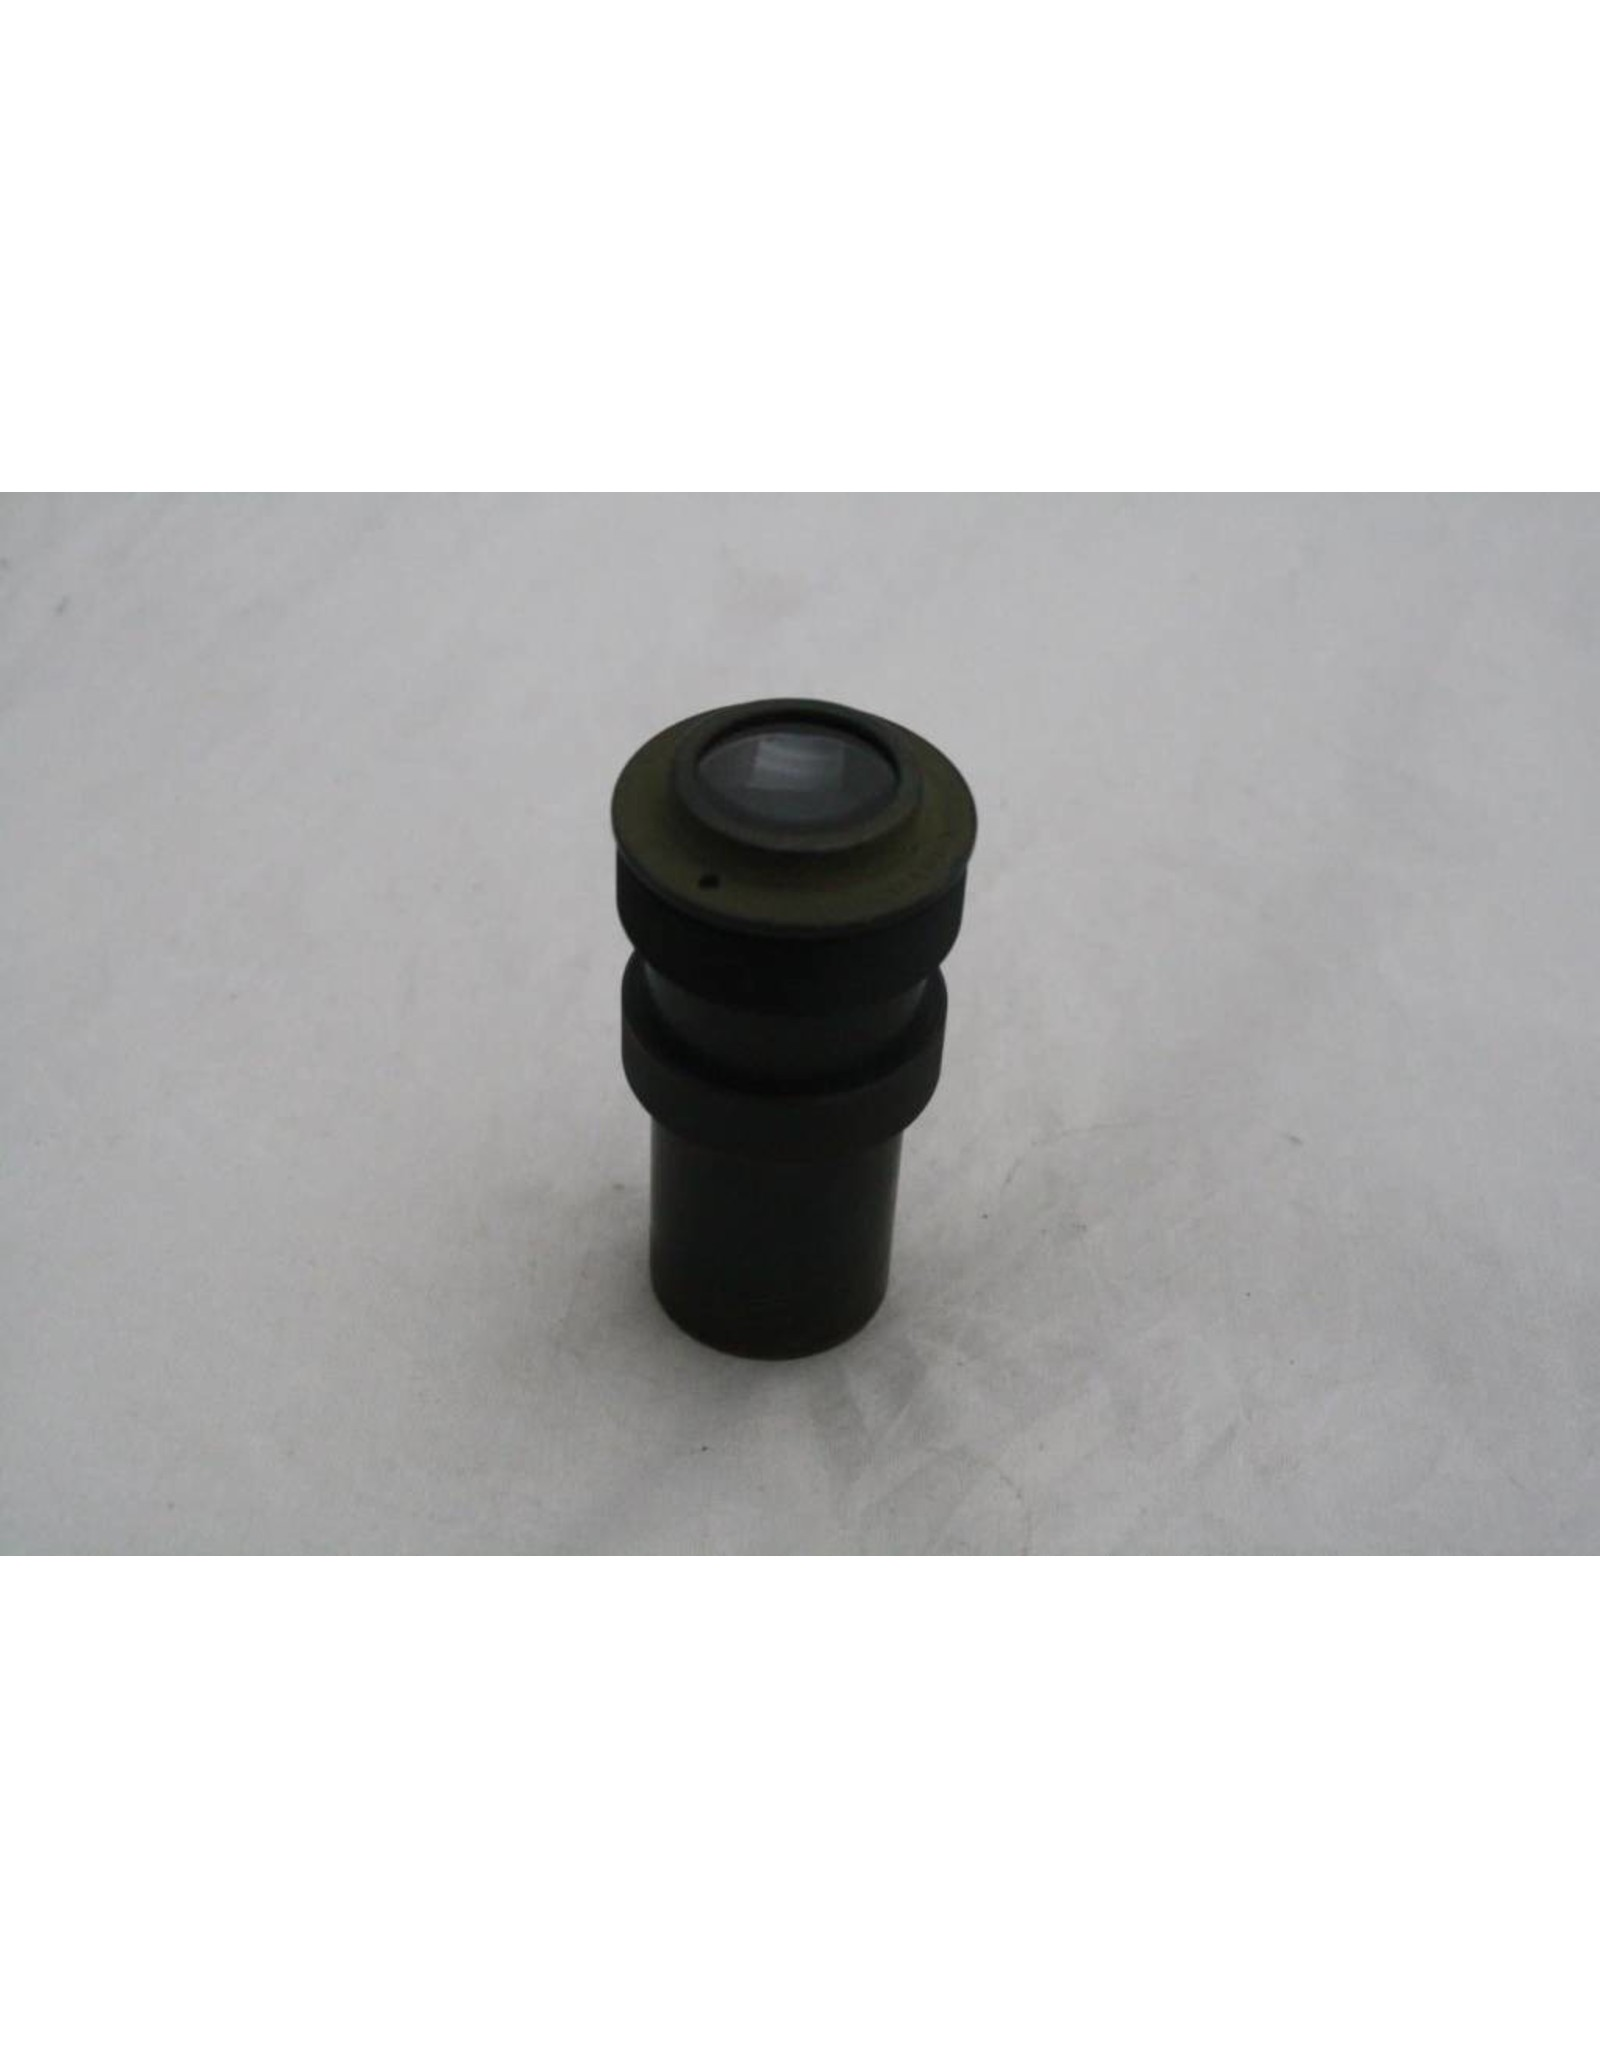 Antique Brass 1.25 eyepiece (Pre-owned)